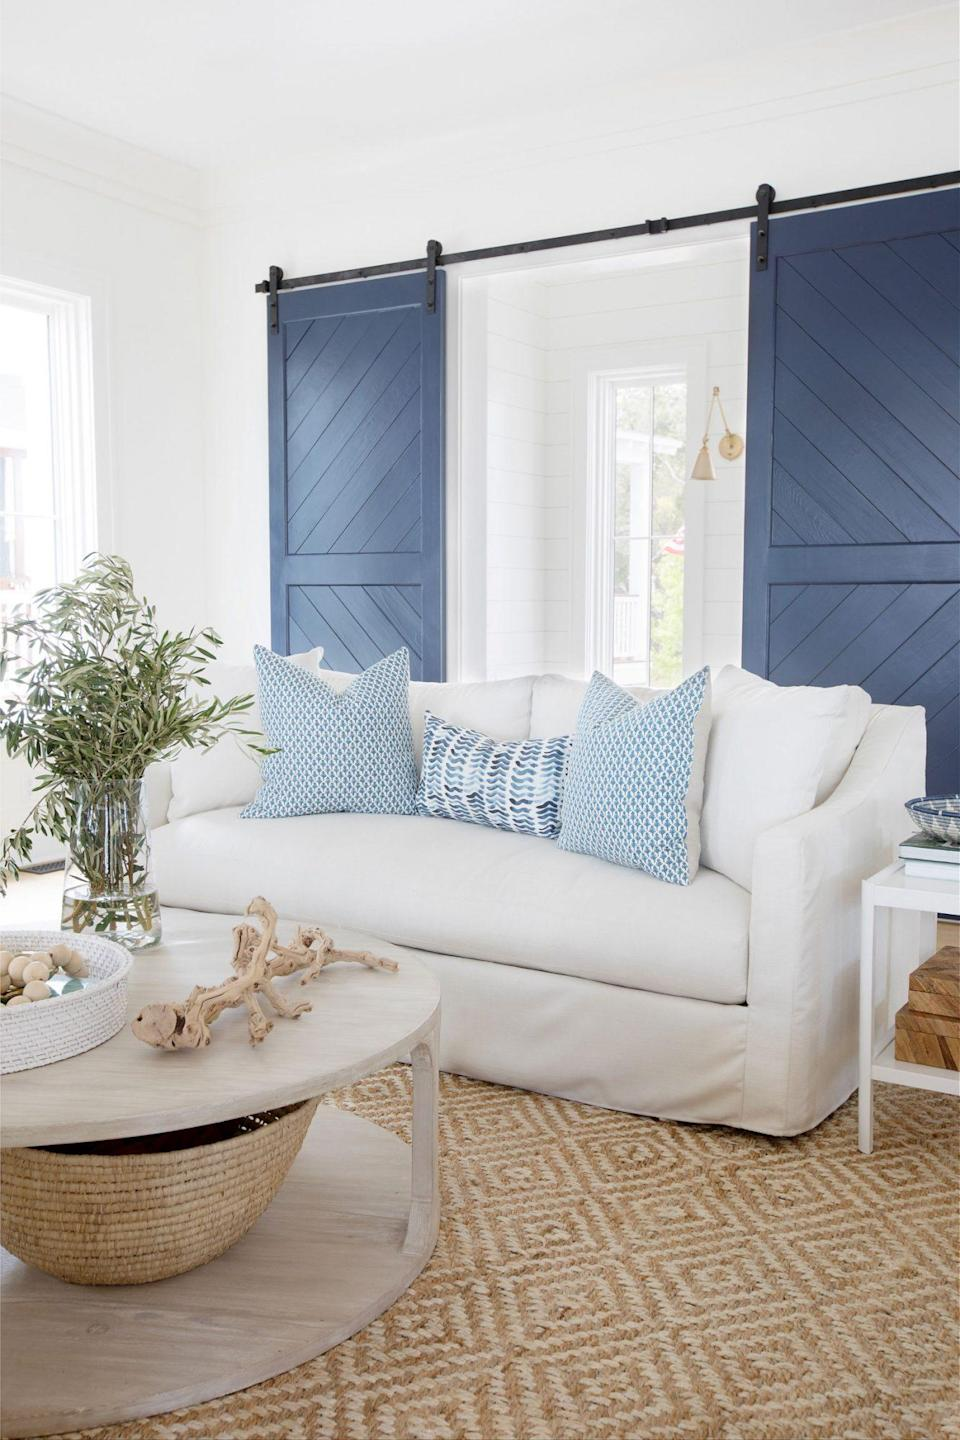 """<p>Charleston interior designer <a href=""""https://www.meganmolten.com"""" rel=""""nofollow noopener"""" target=""""_blank"""" data-ylk=""""slk:Megan Molten"""" class=""""link rapid-noclick-resp"""">Megan Molten</a> says her go-to paint color for making a room feel larger is Benjamin Moore's <a href=""""https://www.benjaminmoore.com/en-us/color-overview/find-your-color/color/oc-65/chantilly-lace?color=OC-65"""" rel=""""nofollow noopener"""" target=""""_blank"""" data-ylk=""""slk:Chantilly Lace"""" class=""""link rapid-noclick-resp"""">Chantilly Lace</a>. """"I've used it so much that it's become my signature shade. It's really just the perfect bright white—creating the ideal backdrop for that clean, coastal, and airy feel my clients are looking to achieve in their homes.""""</p>"""